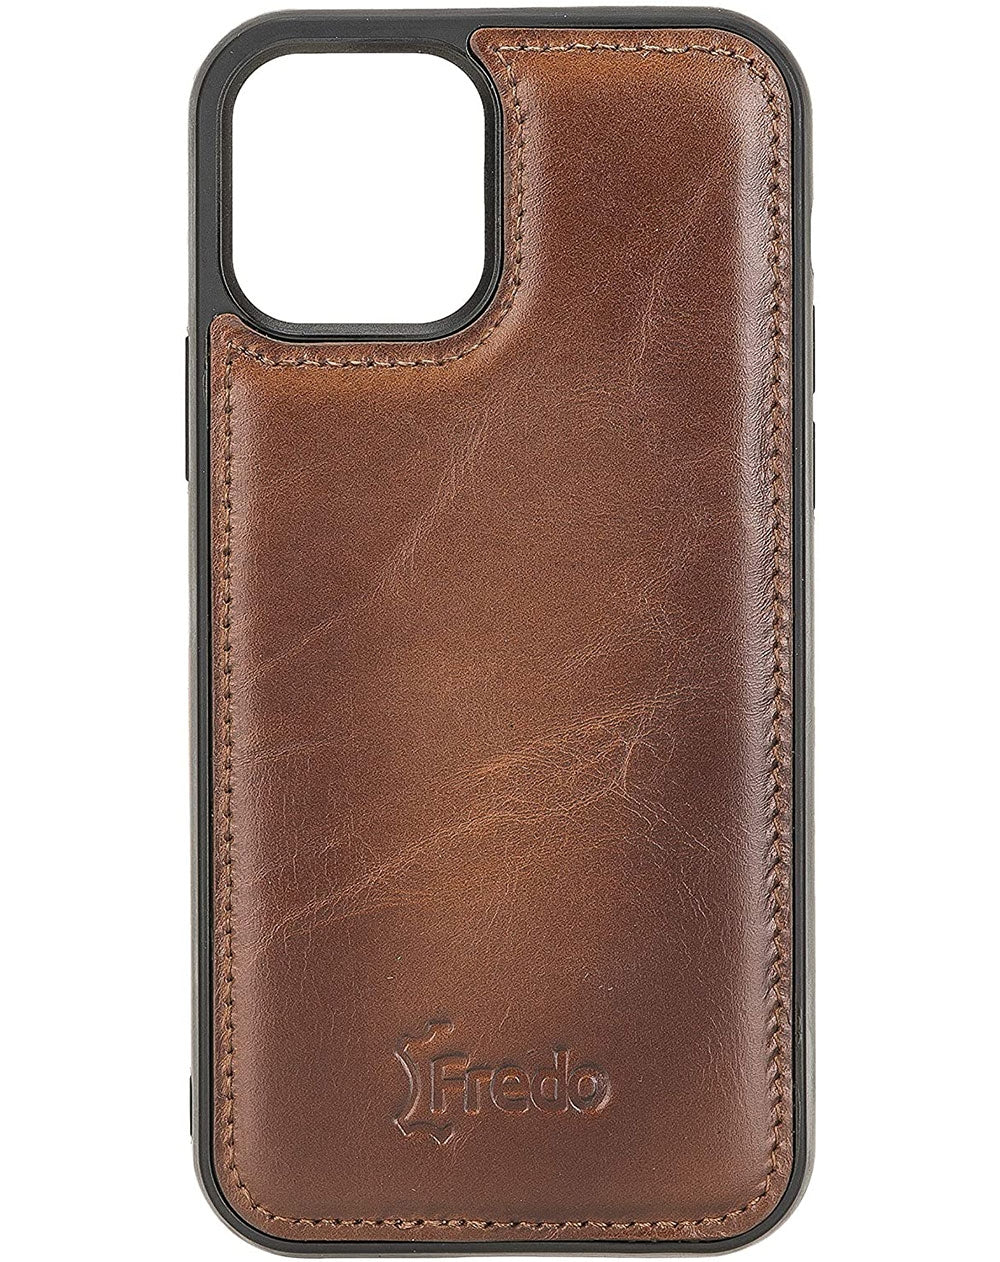 FREDO Lederhülle kompatibel mit iPhone 12 (6.1 - 5.4 - 6.7) Zoll Reflex Ultra Slim Cover Handyhülle für Apple iPhone 12 (6.1 - 5.4 - 6.7) inch Handytasche/Hand Made/-Cognac Braun-iPhone 12 (6.1 Zoll)-0